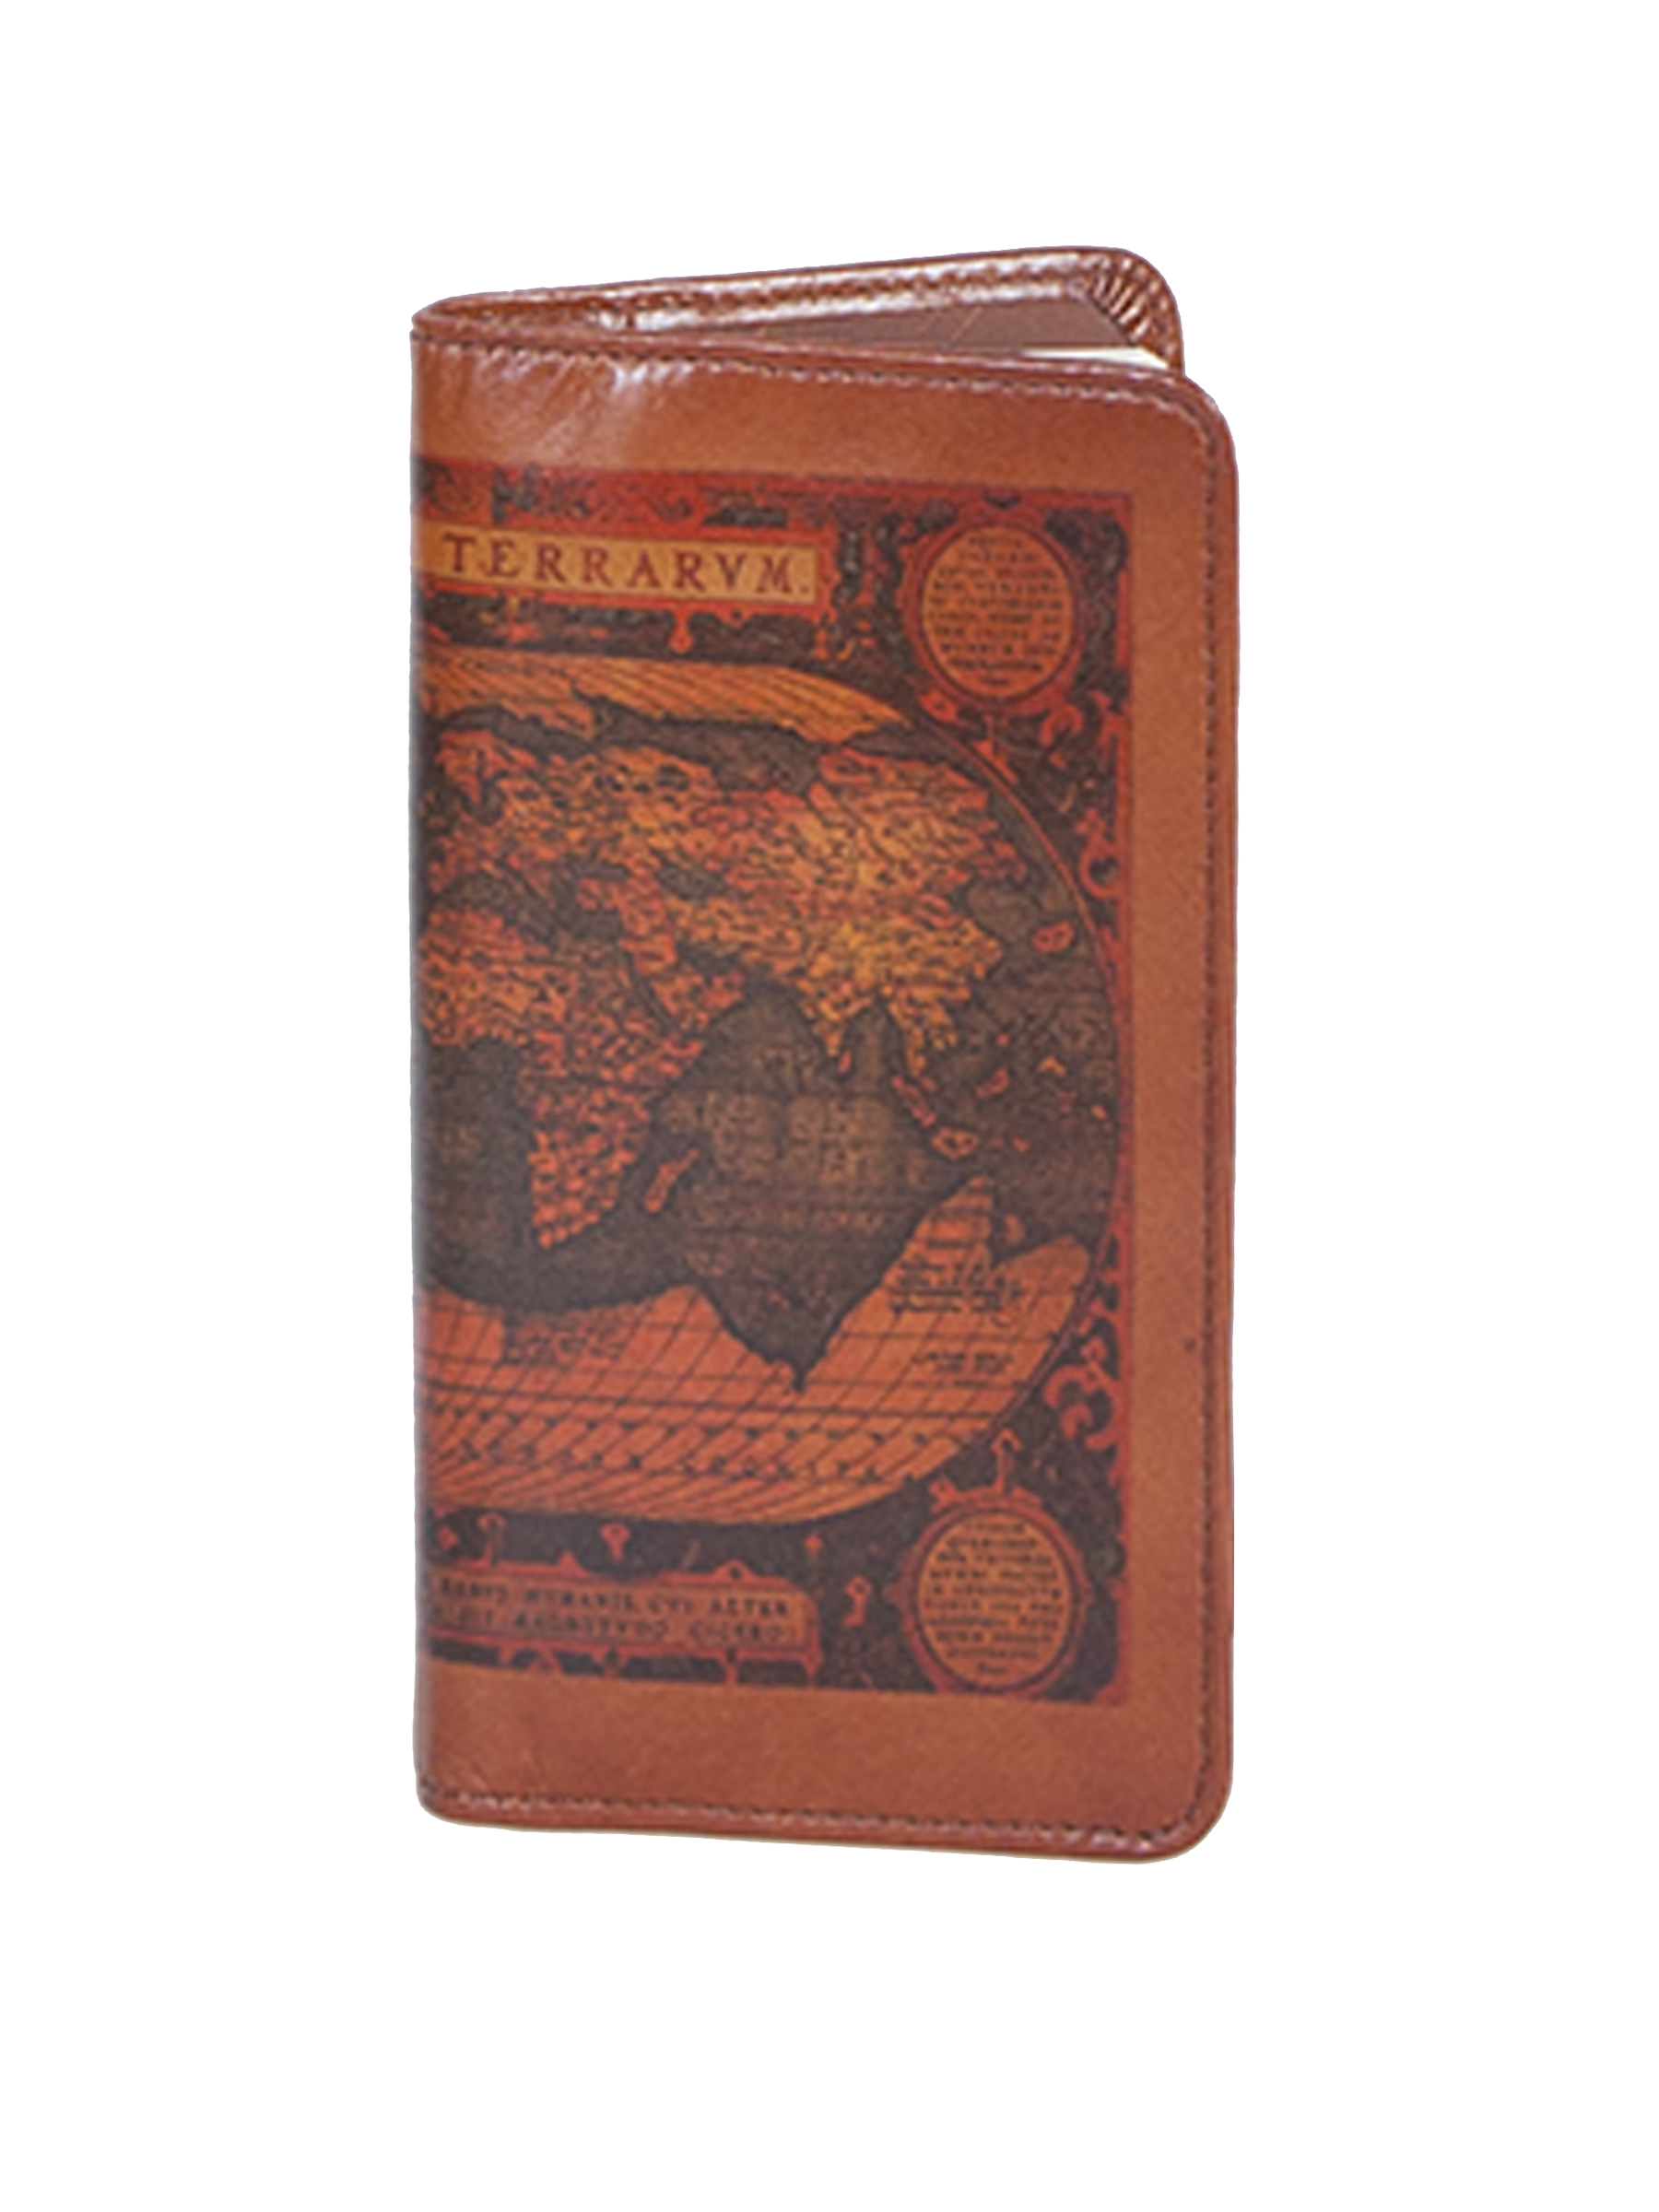 Leather pocket weekly planner